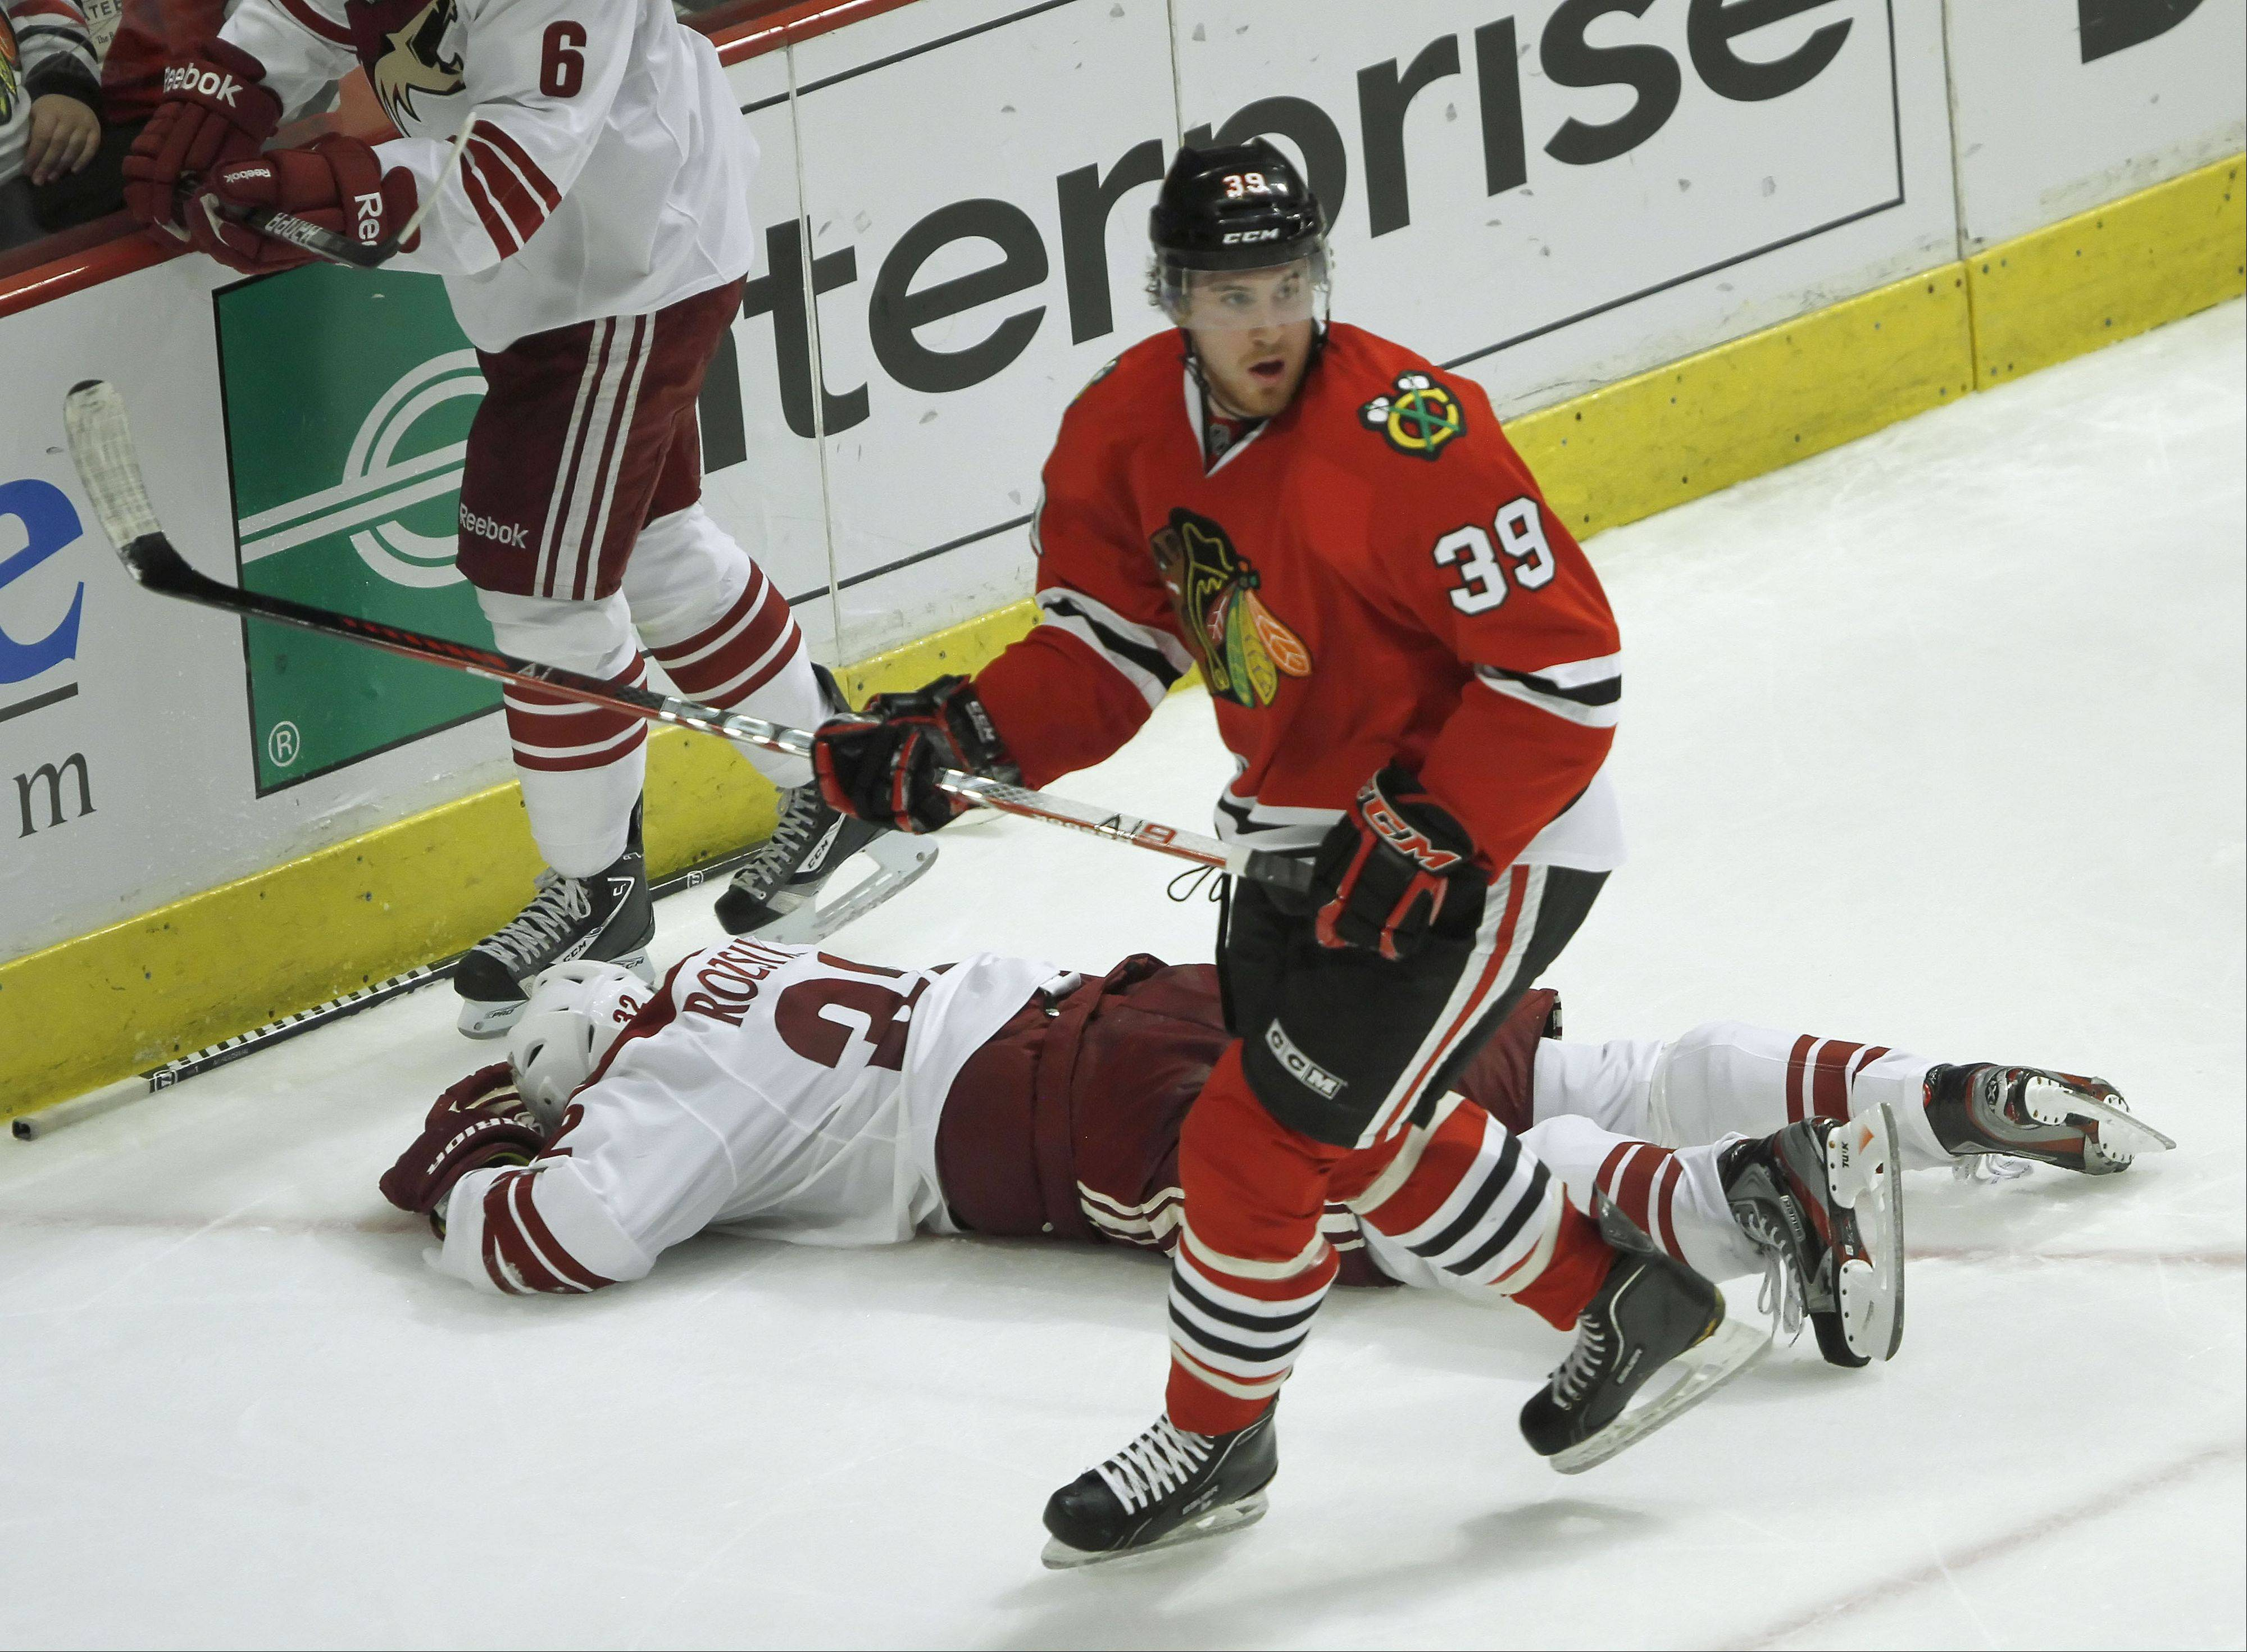 Former Phoenix Coyotes defenseman Michal Rozsival, shown here sprawled on the ice, might remember this hit by Blackhawks right winger Jimmy Hayes in the playoffs. Rozsival has agreed to a one-year contract with the Blackhawks.